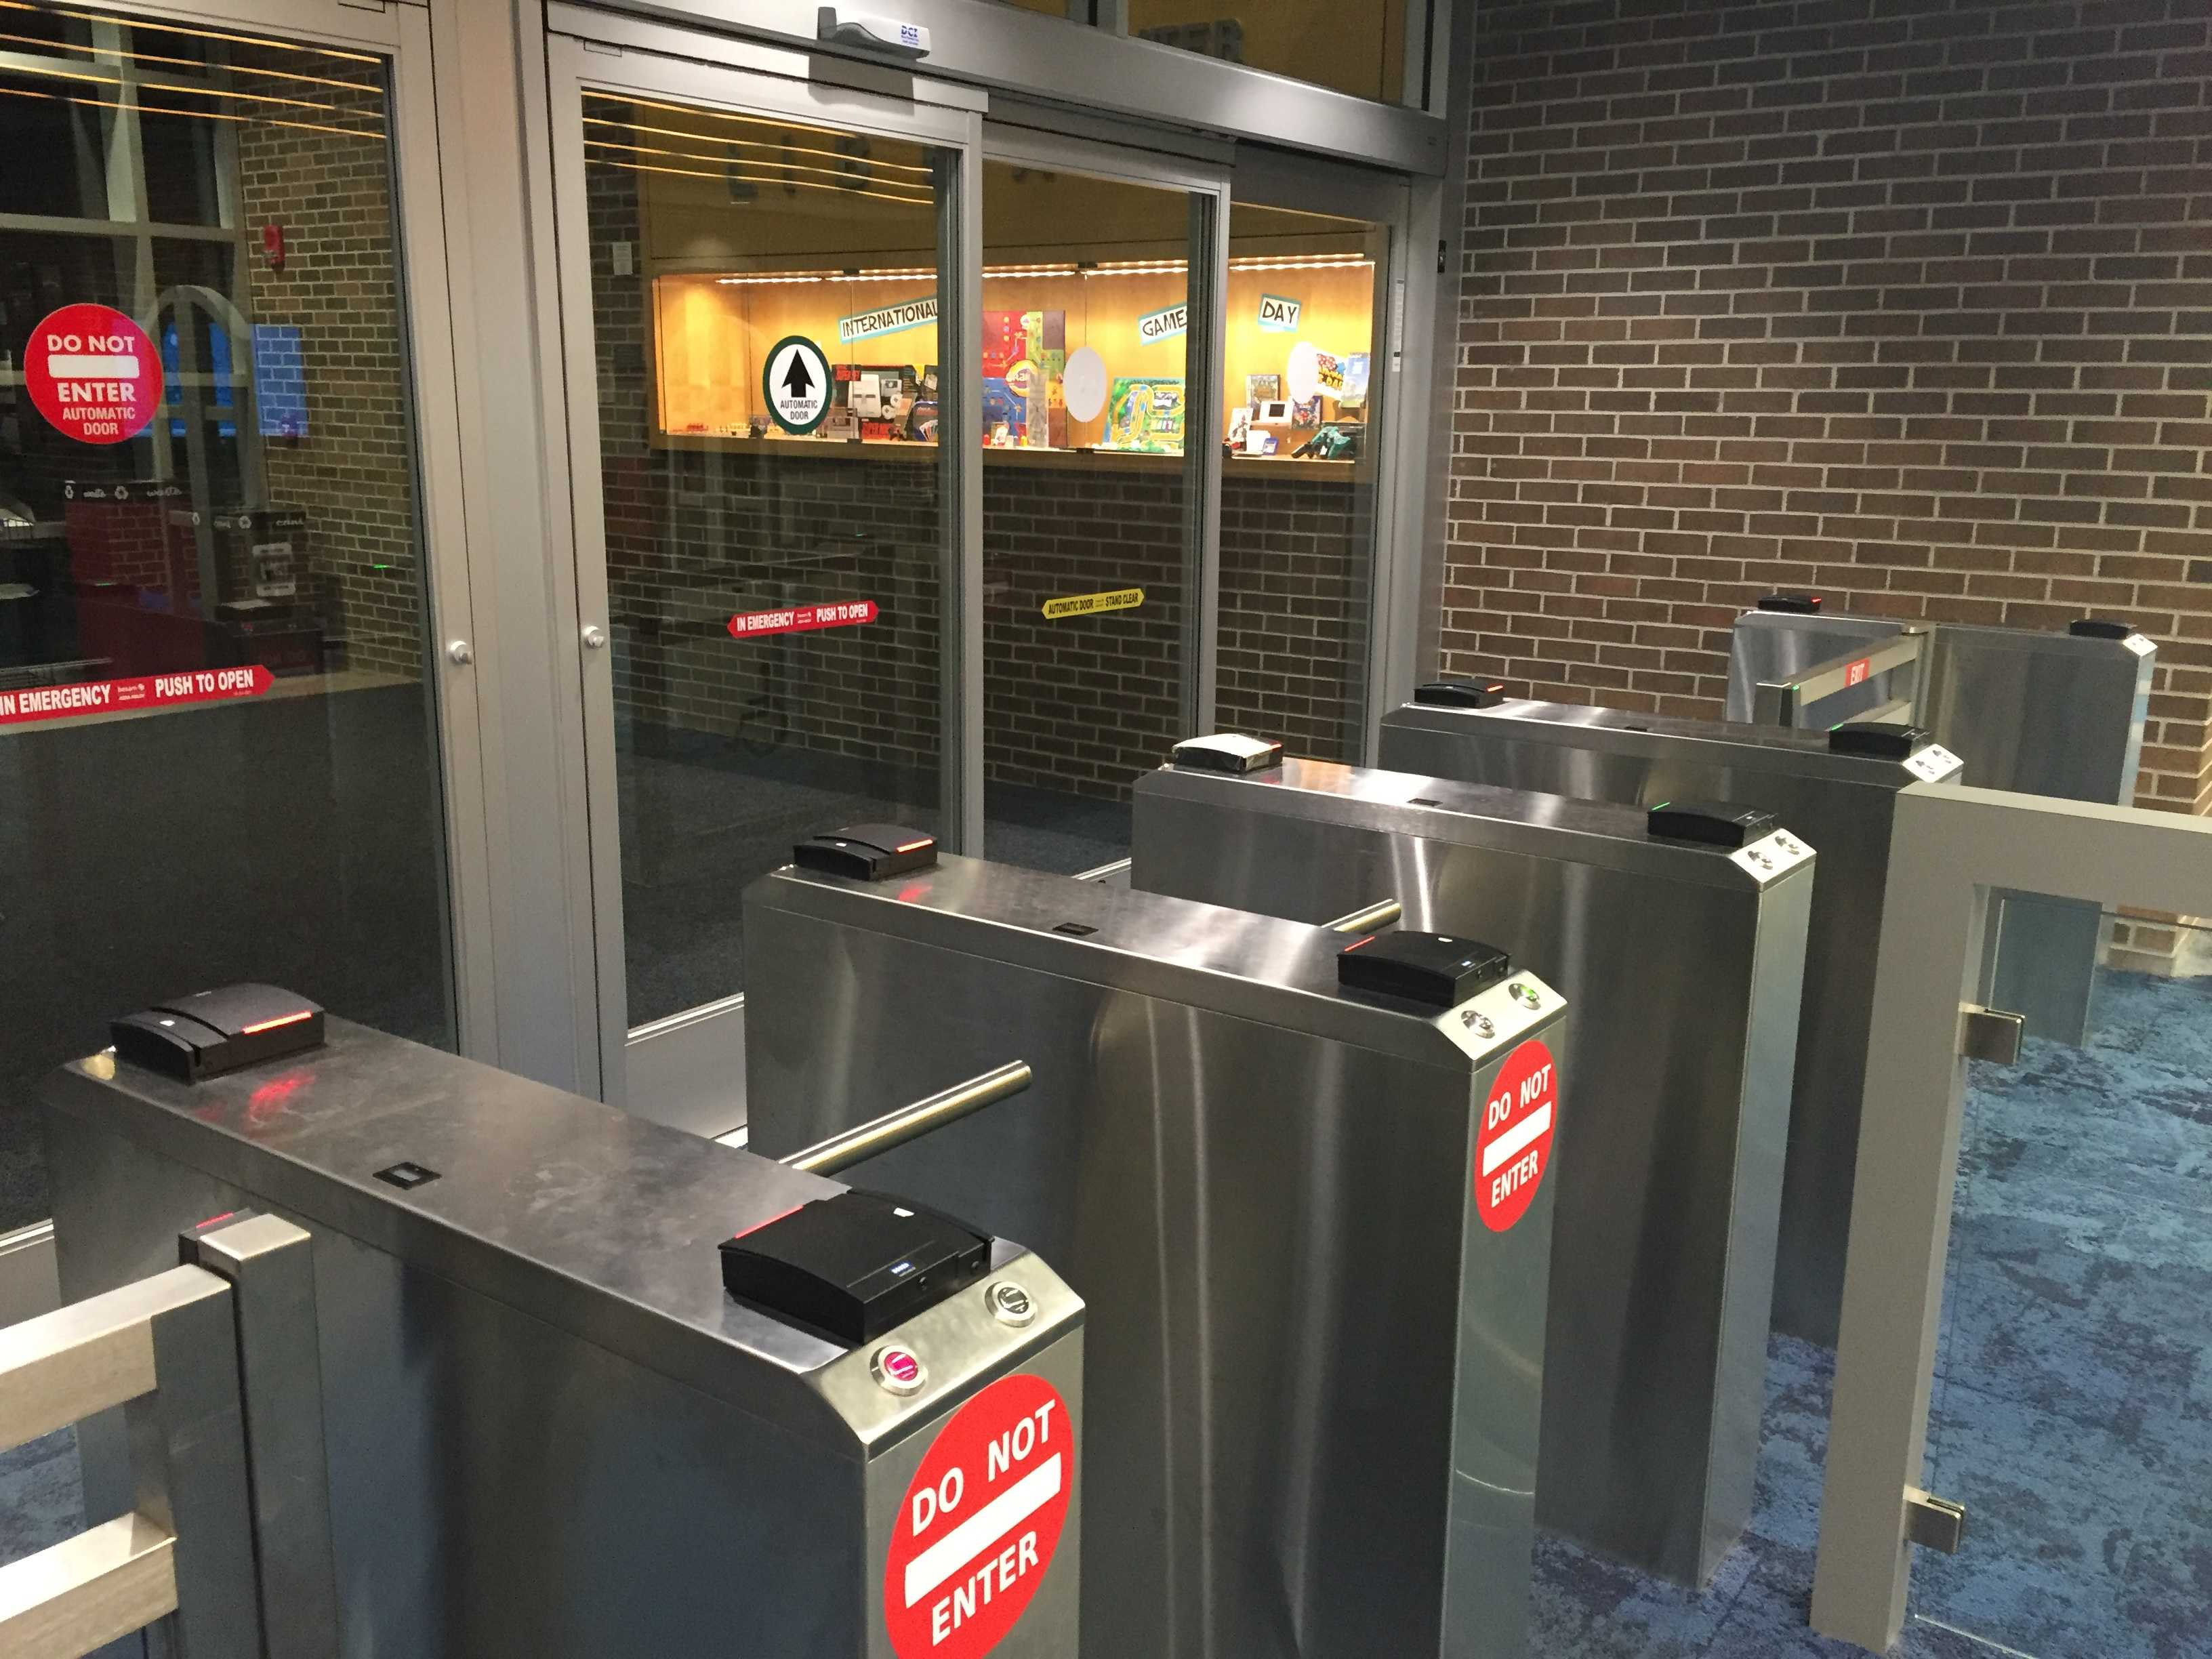 Unf Library Implements Turnstile System To Enhance Campus Safety